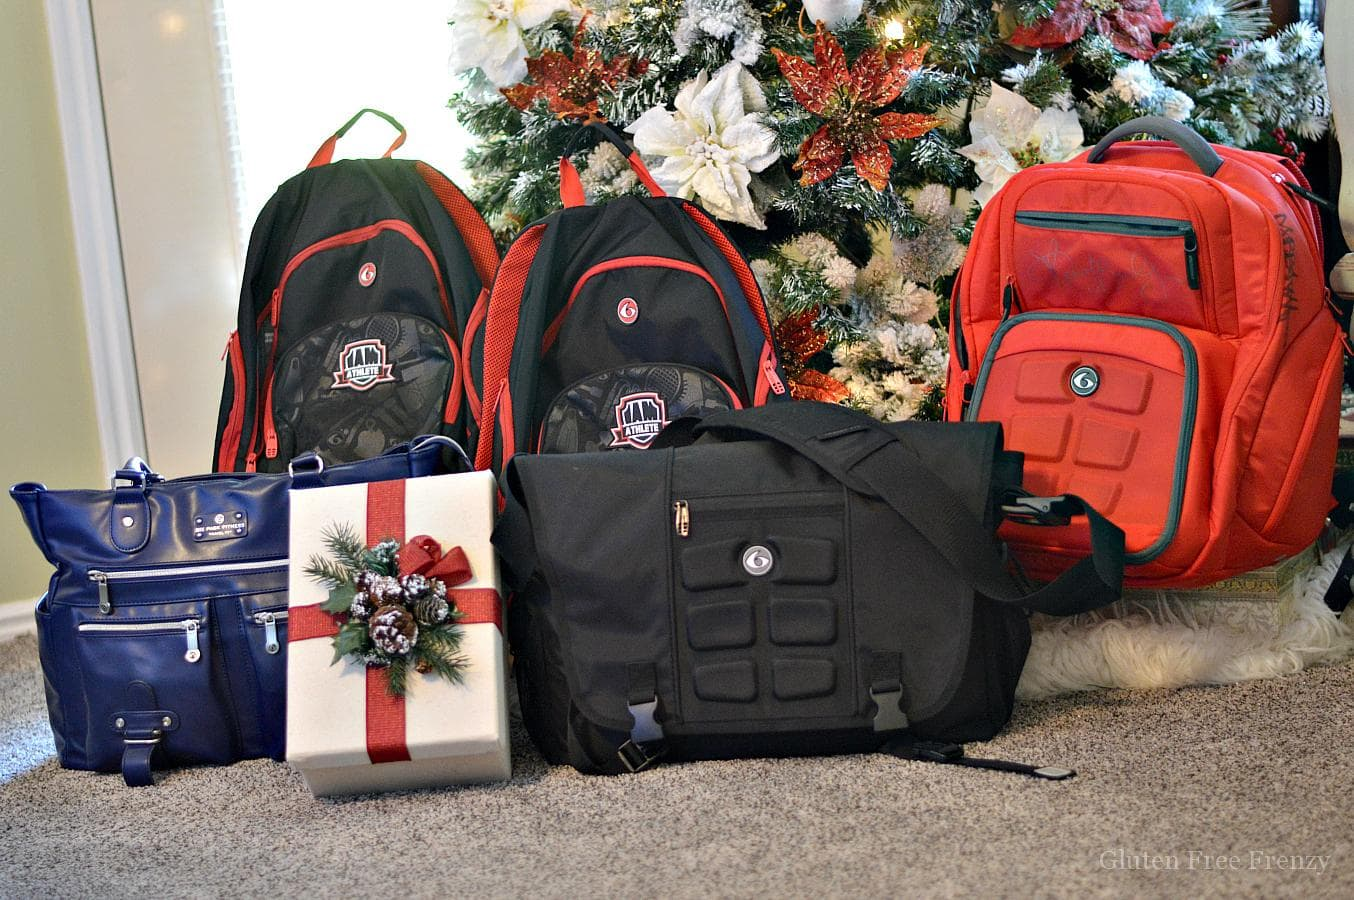 6 Pack Bags Holiday Gift Idea